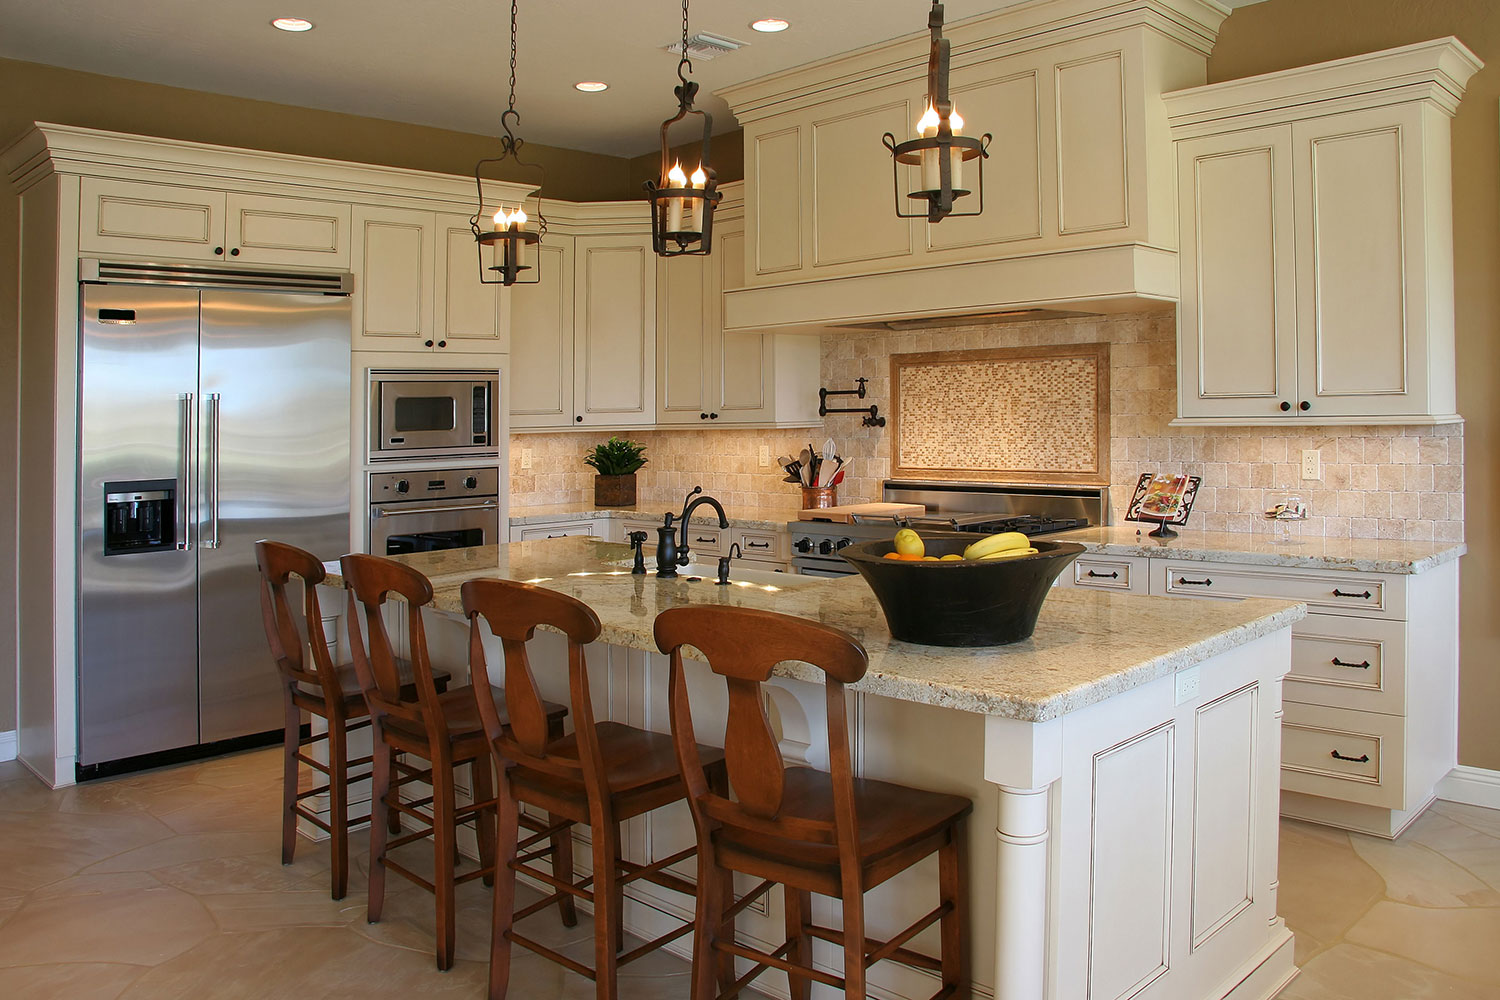 Cream Farmhouse Kitchen Cabinets with Neutral Backsplash